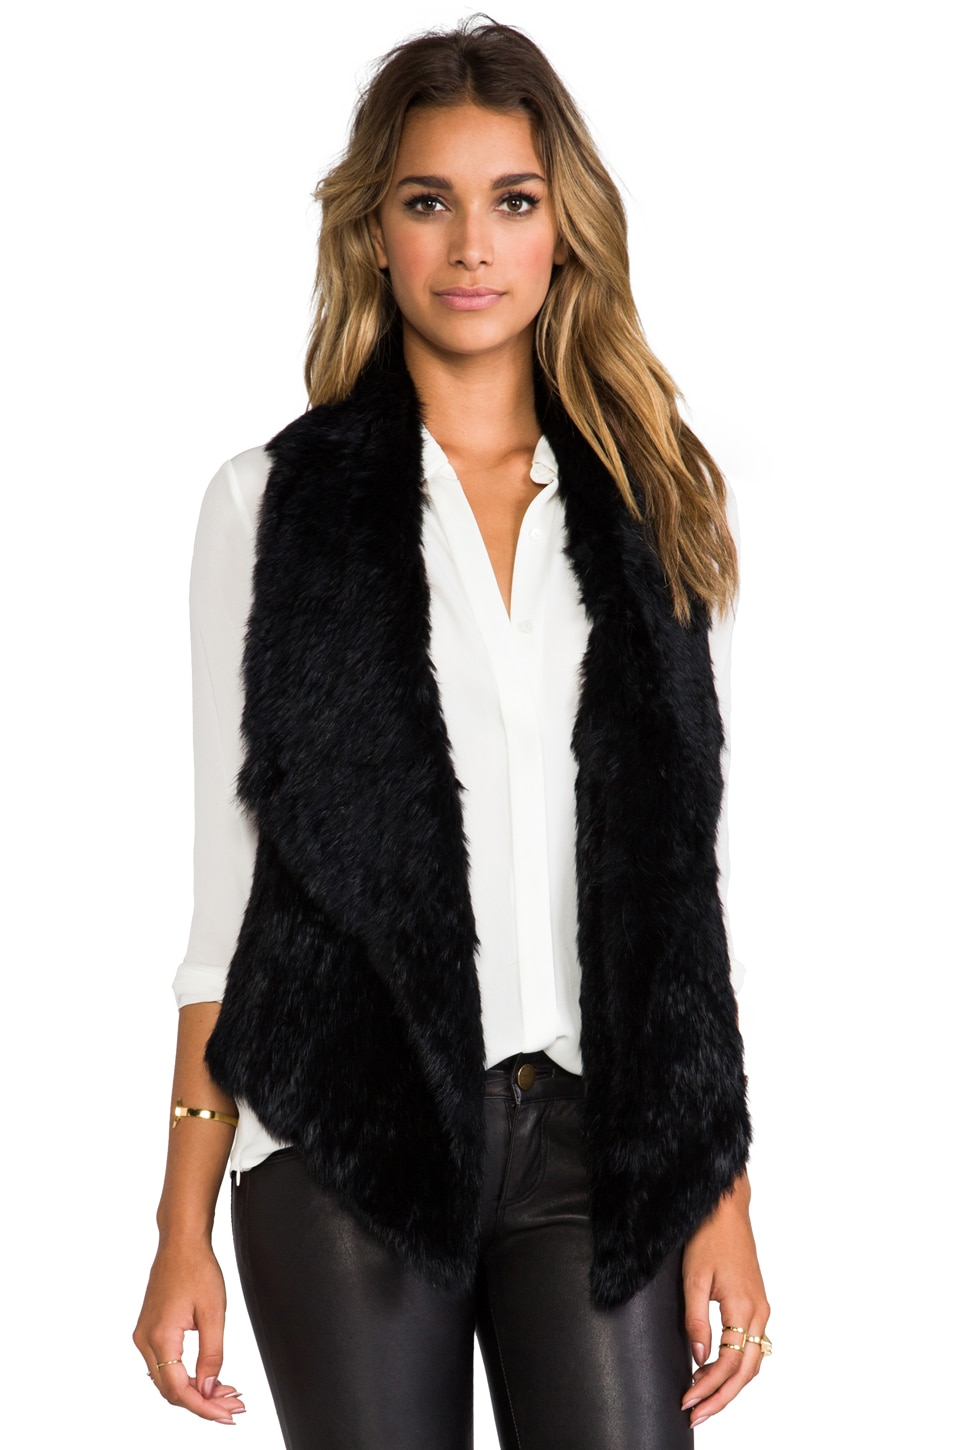 Elizabeth and James Menia Vest in Black/Black